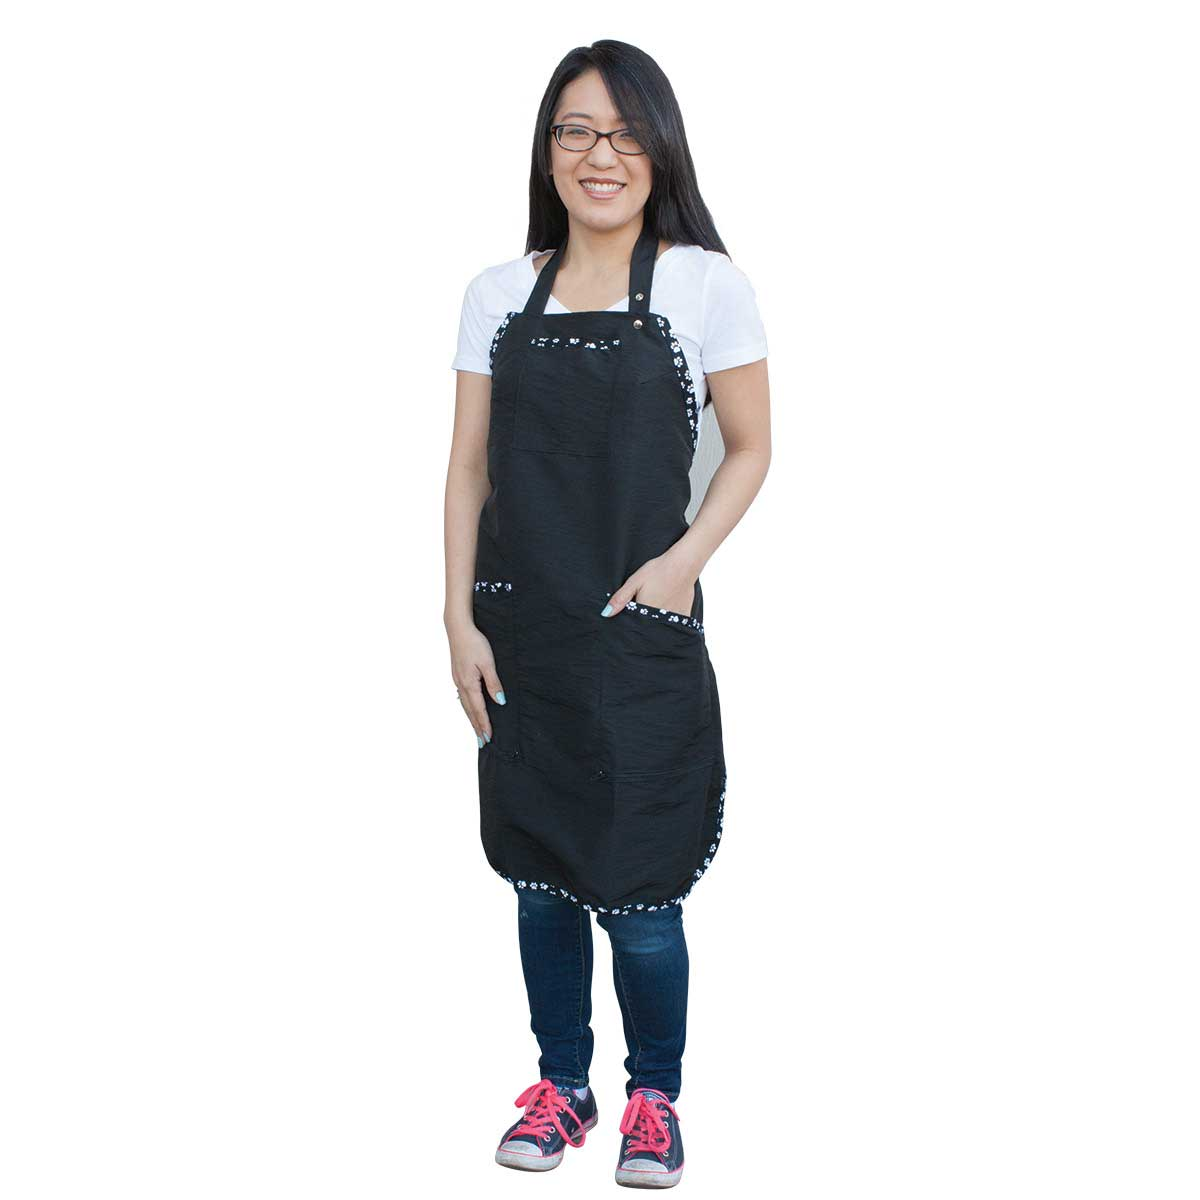 Paw Brothers Black Apron with White Paw Print Trim